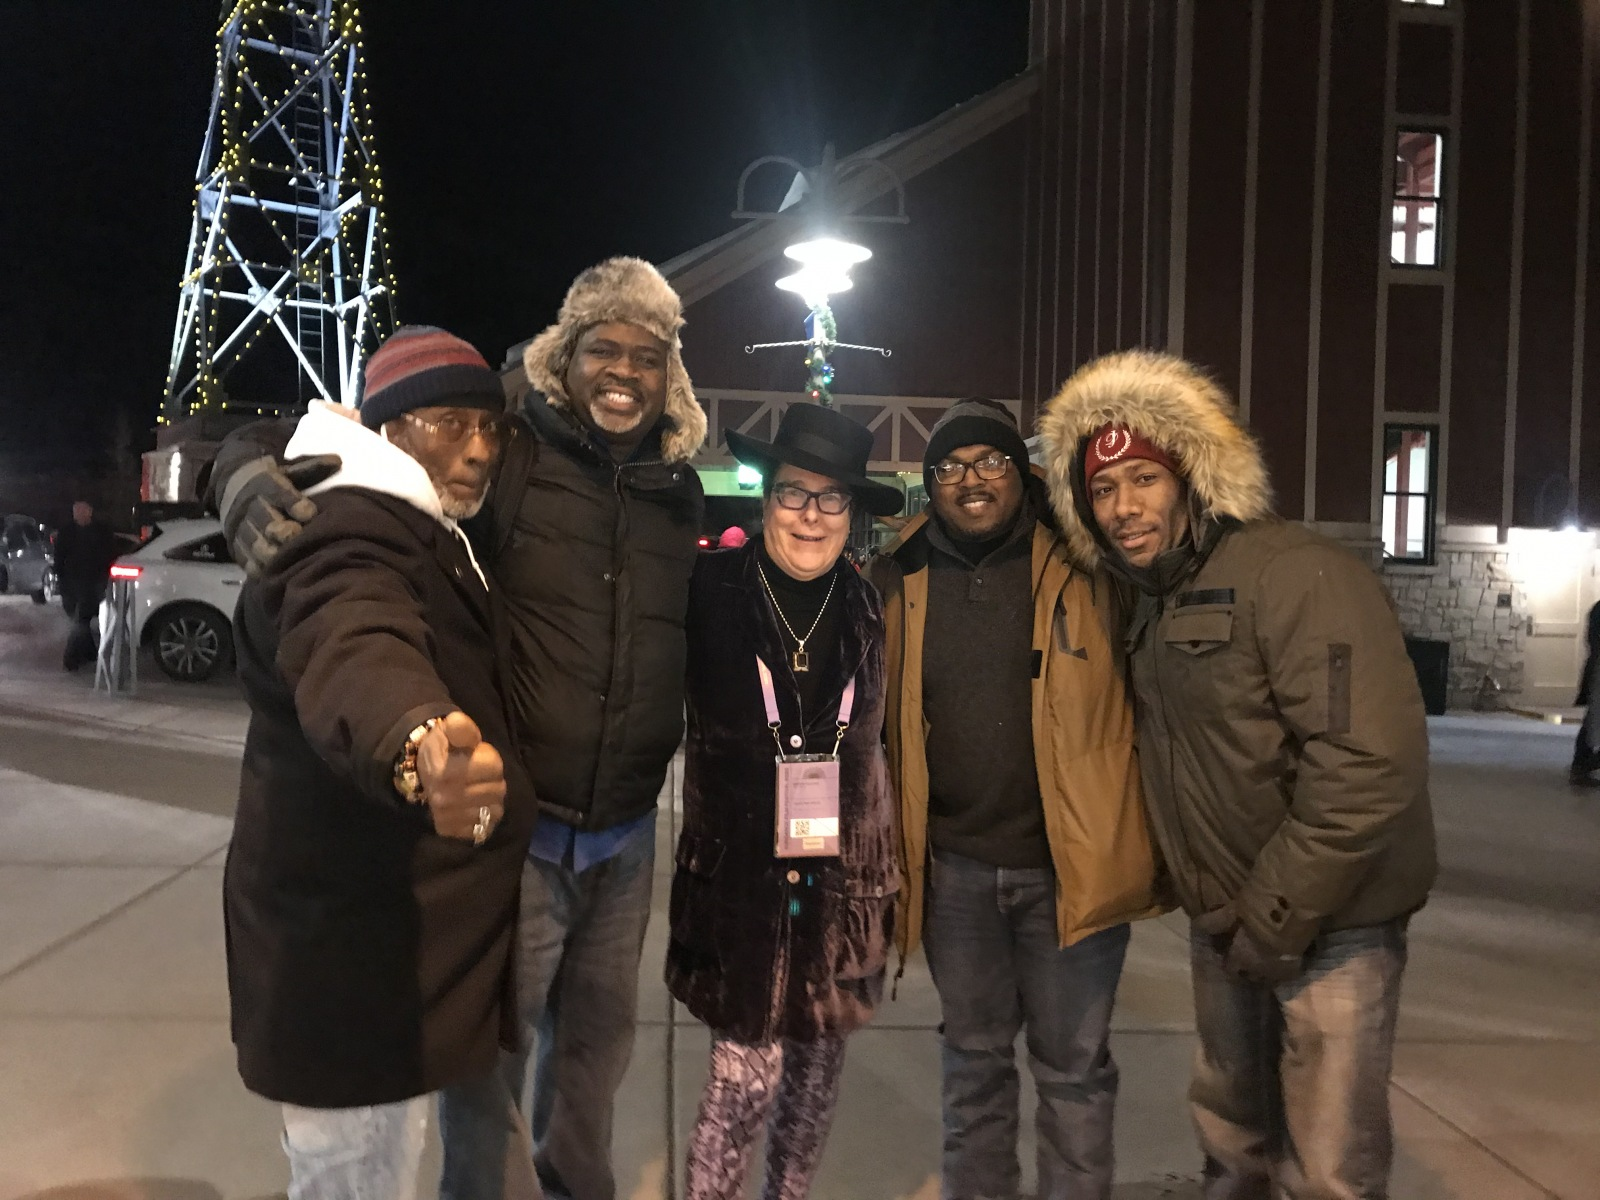 Kenneth-Ketrick-Carol-Ann-Shine-Jeff-Javon-Blackhouse-2020